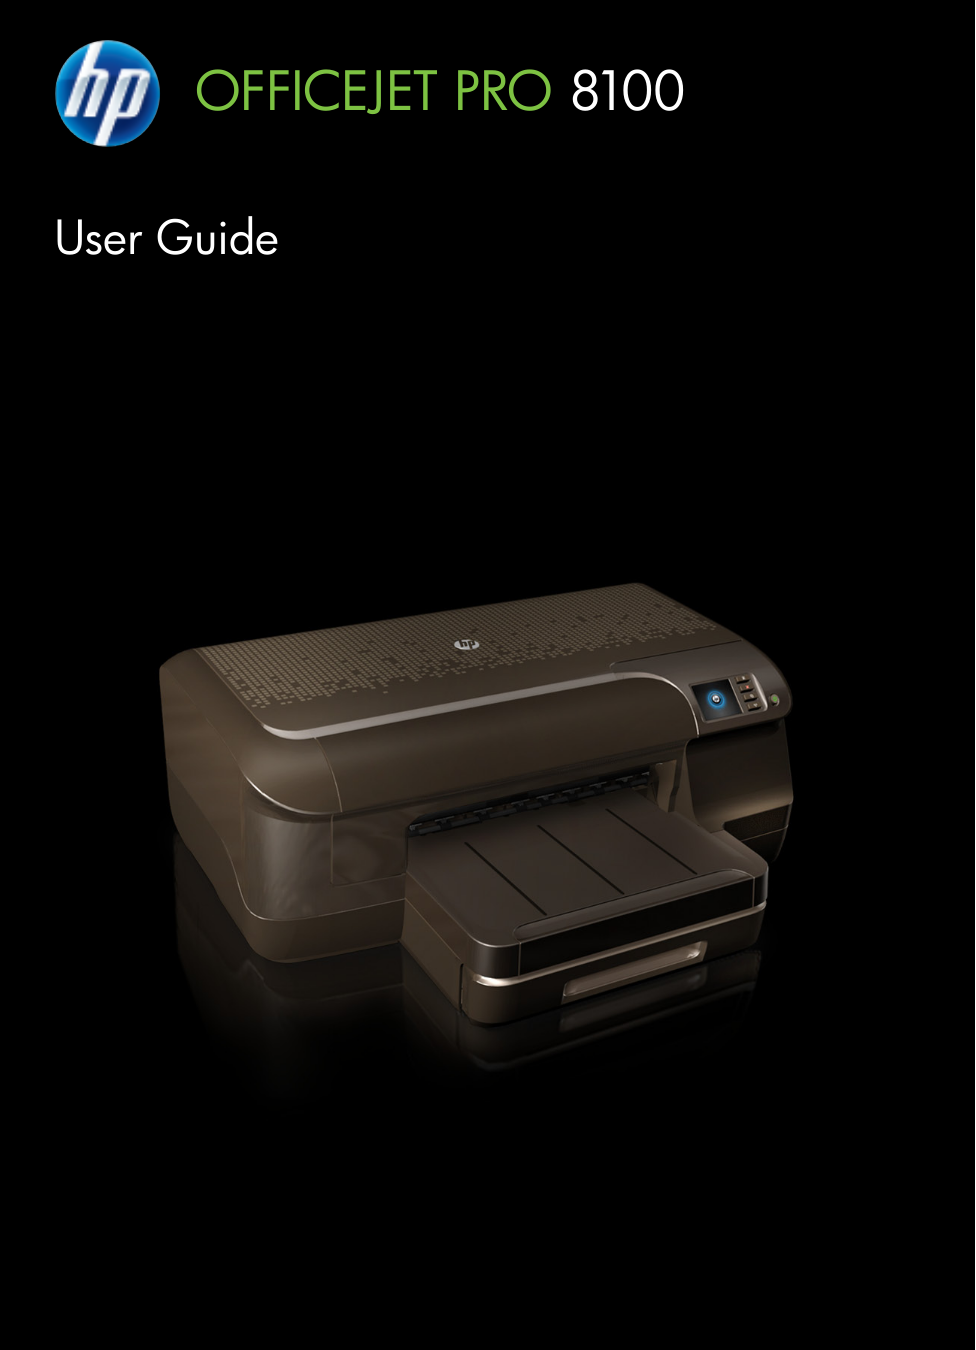 pdf for HP Printer Officejet Pro 8100 manual